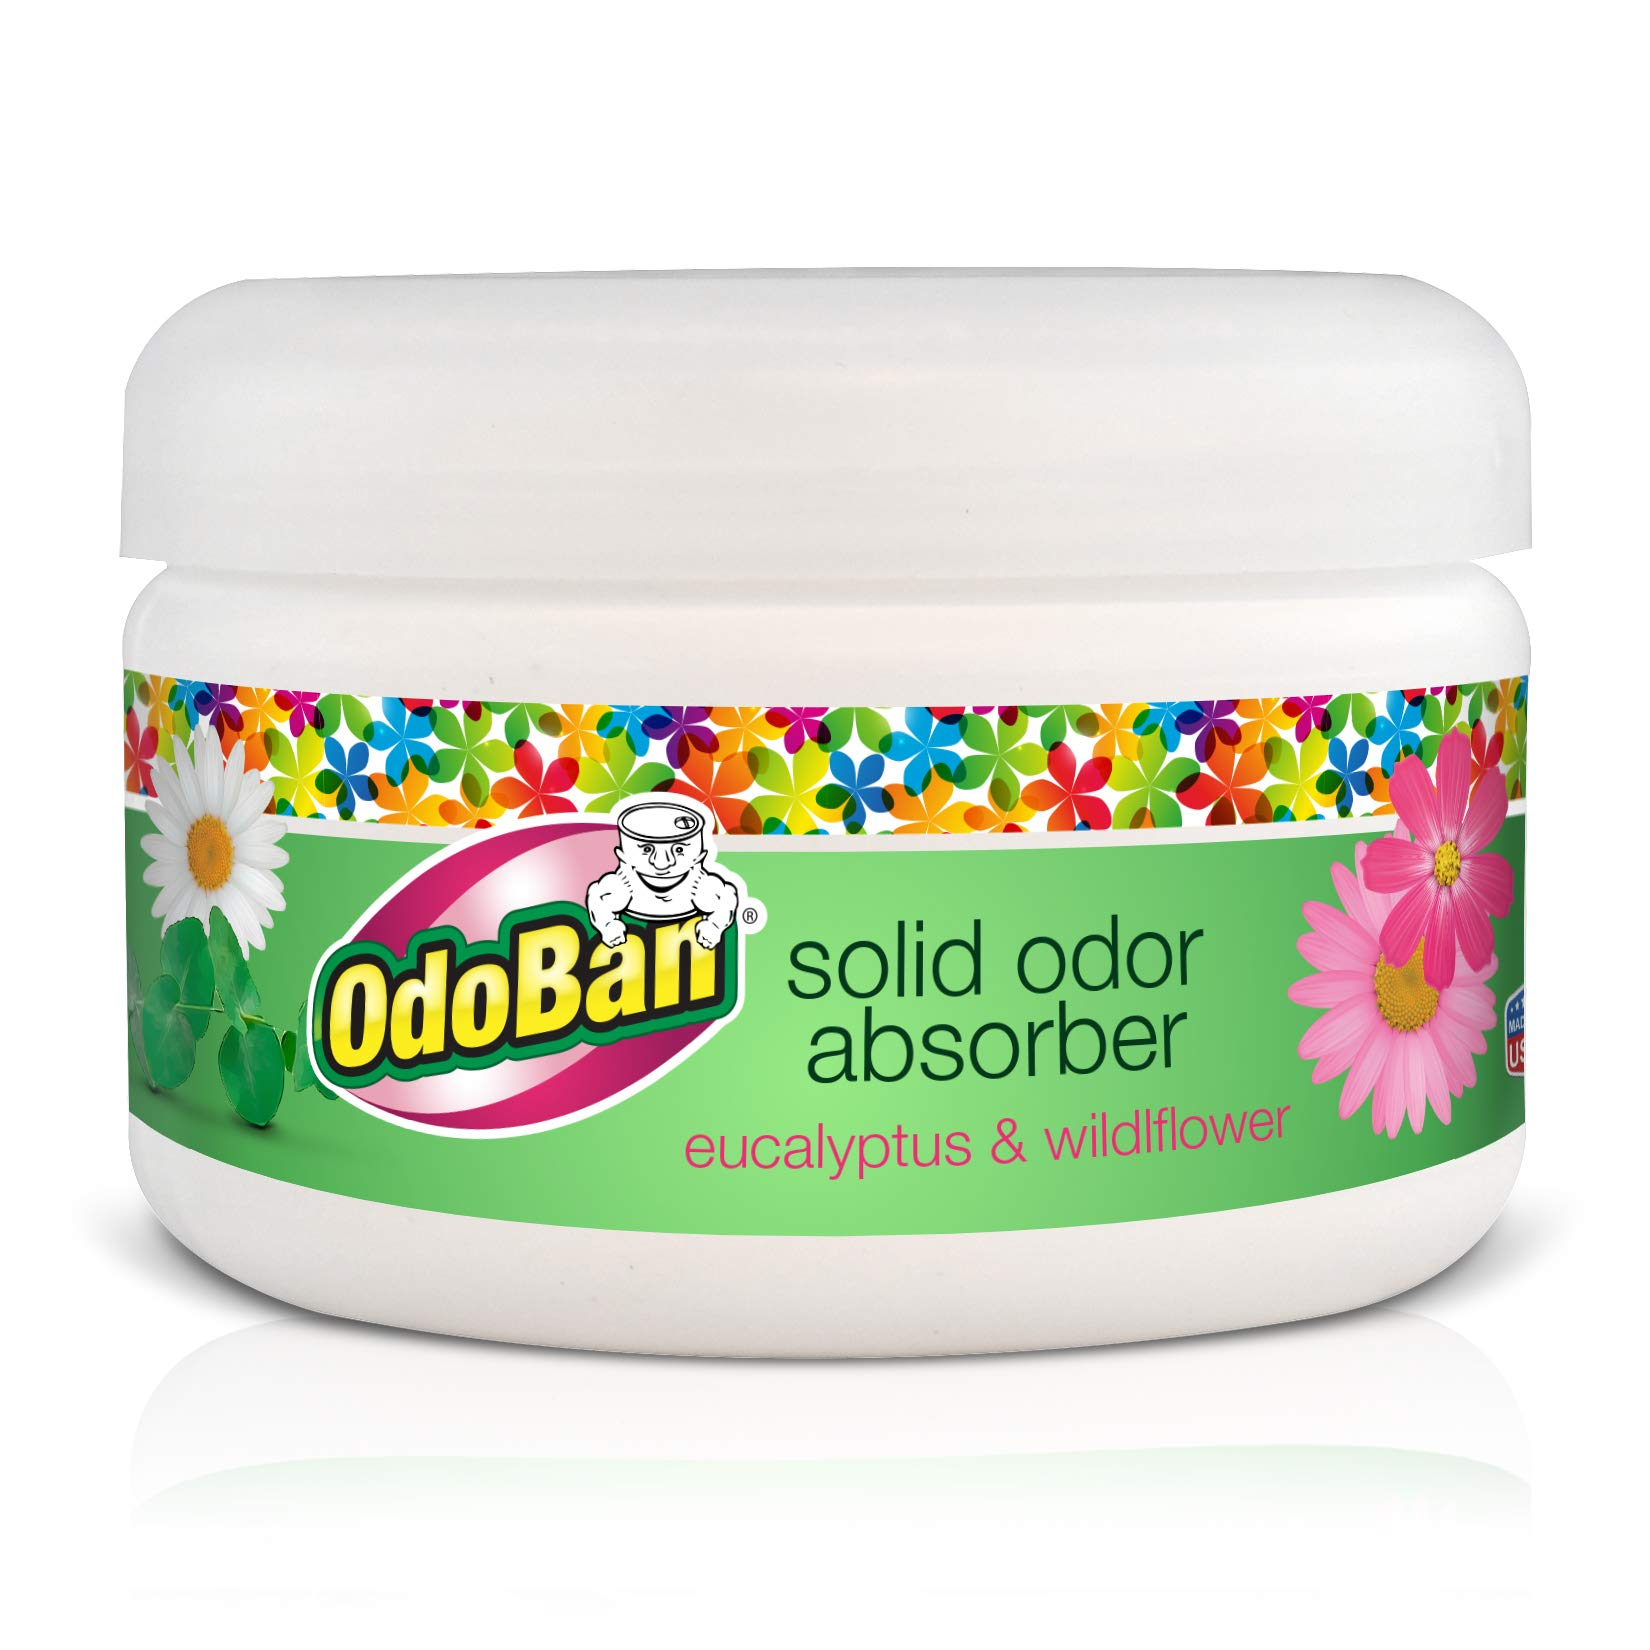 OdoBan Disinfectant Odor Eliminator and All Purpose Cleaner, 32 oz Spray and 1/2 Gallon Concentrate, Original Eucalyptus, Plus Solid Odor Absorber by OdoBan (Image #4)